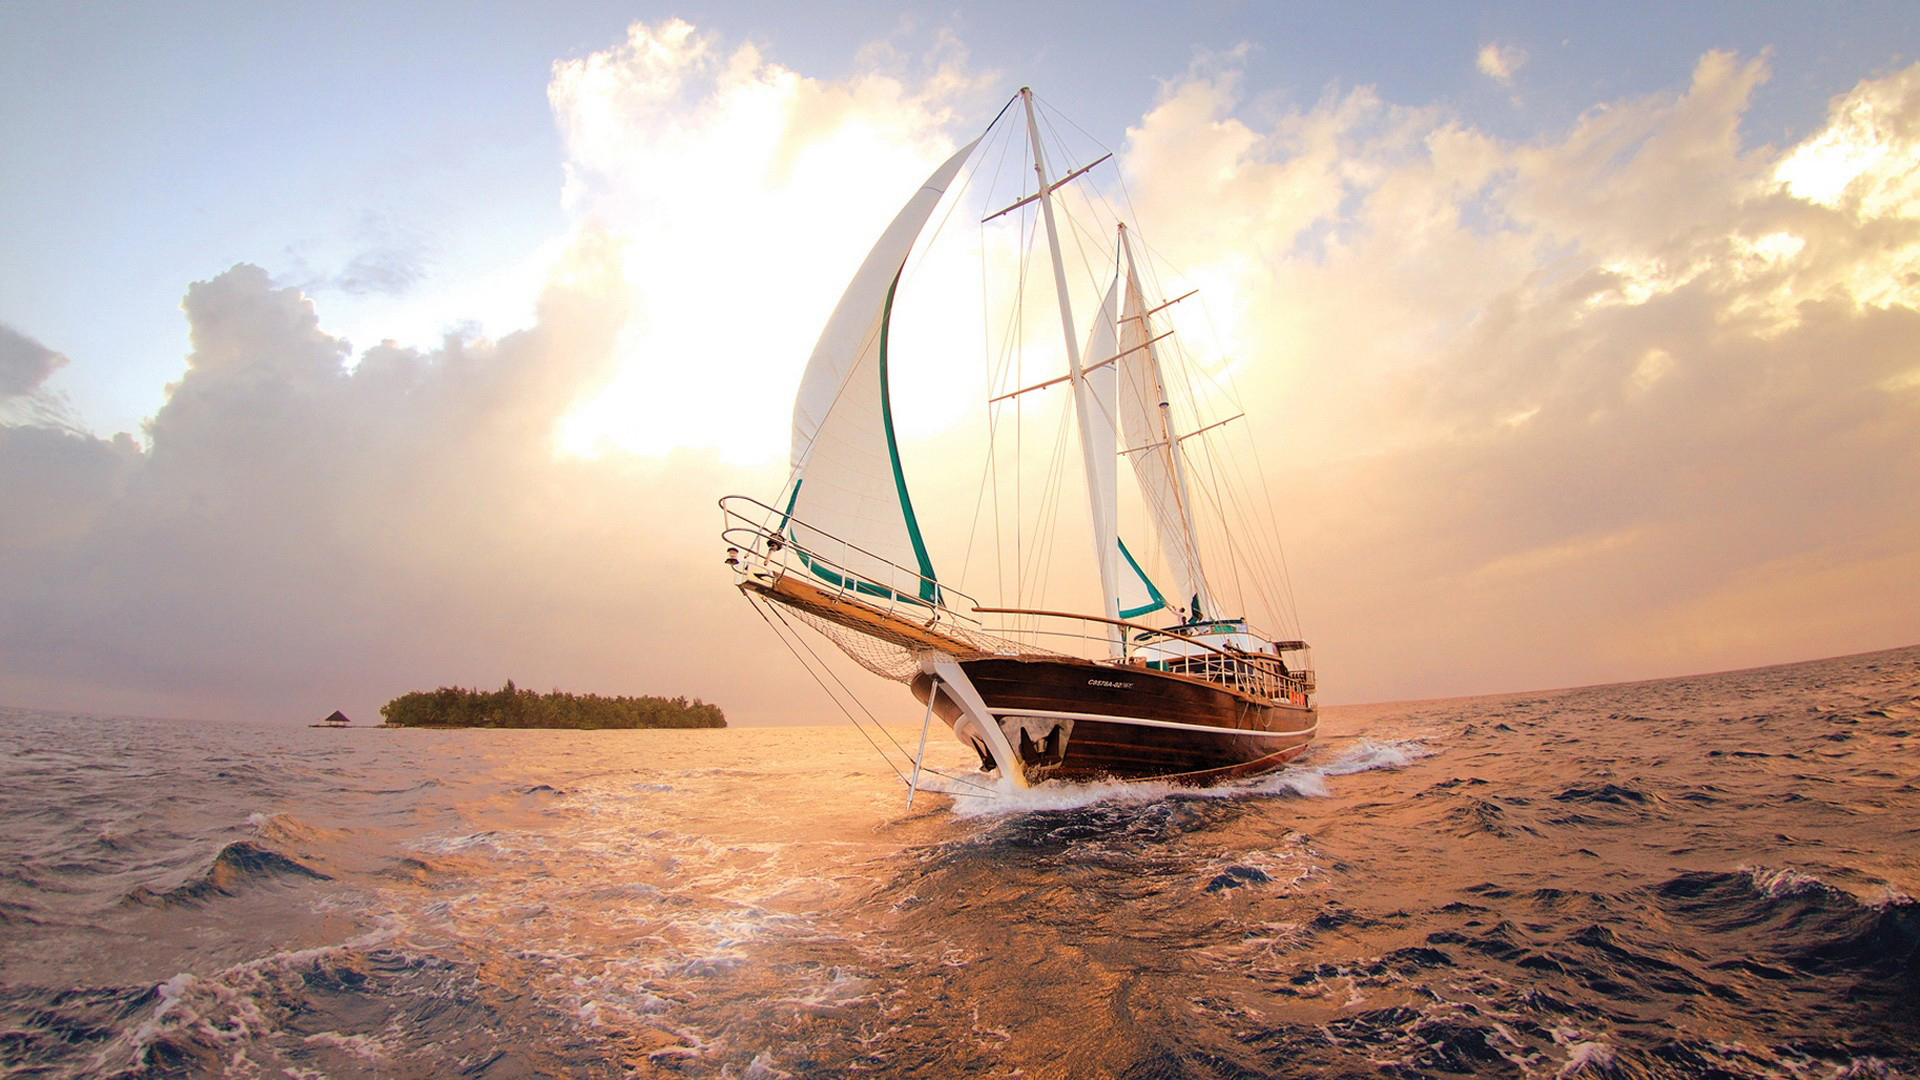 hungry for sailboat wallpaper - photo #7